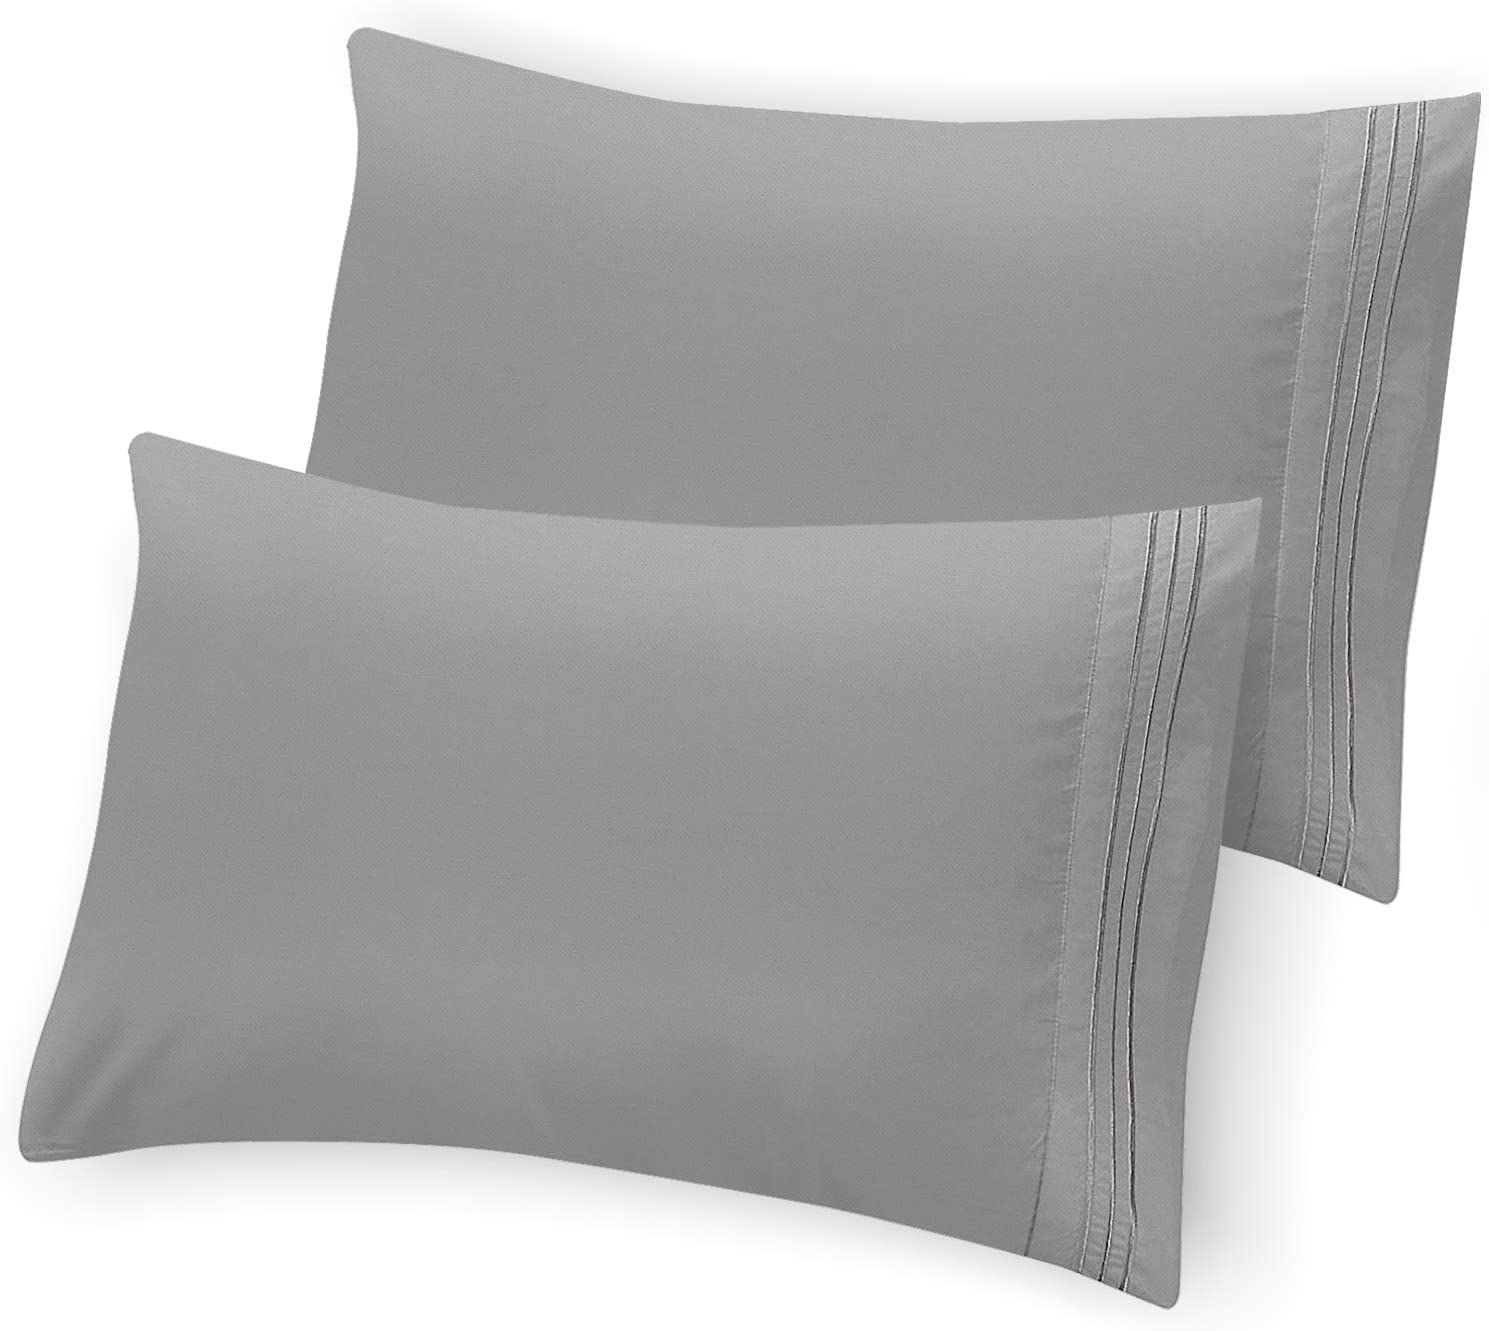 Hannah Linen Grey Pillowcase Set of 2 - Brushed Microfiber 1800 Thread Count Pillow Cases - Wrinkle, Shrinkage, Fade Resistant & Hypoallergenic Envelop Closure Pillow Covers (Grey, King)